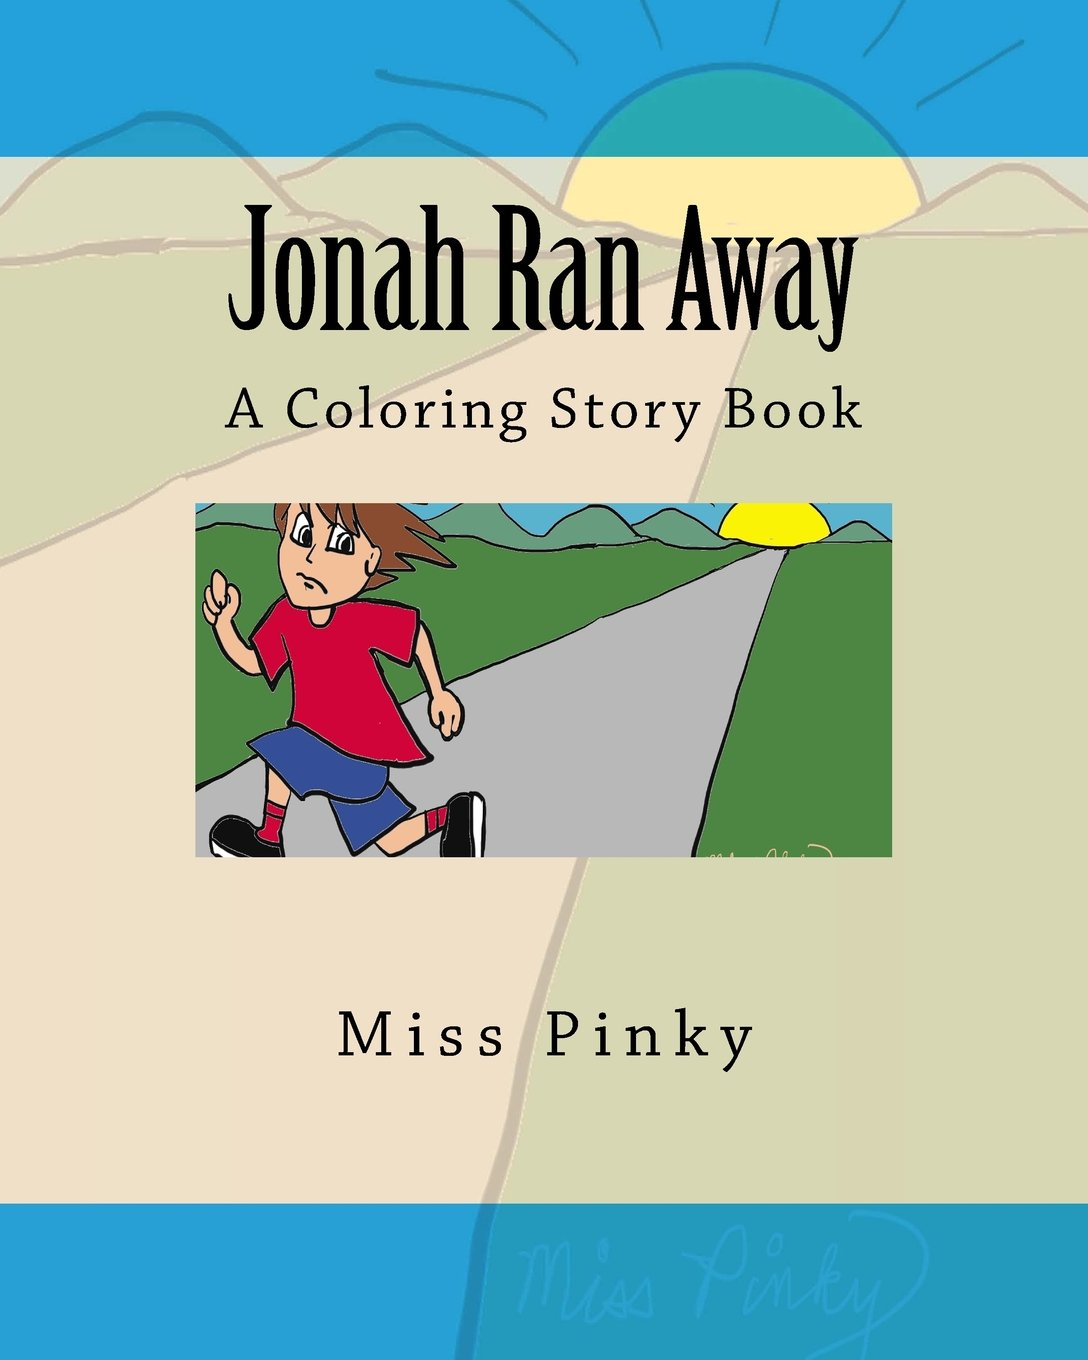 Jonah ran away a coloring story book for children by miss pinky paperback may 15 2018